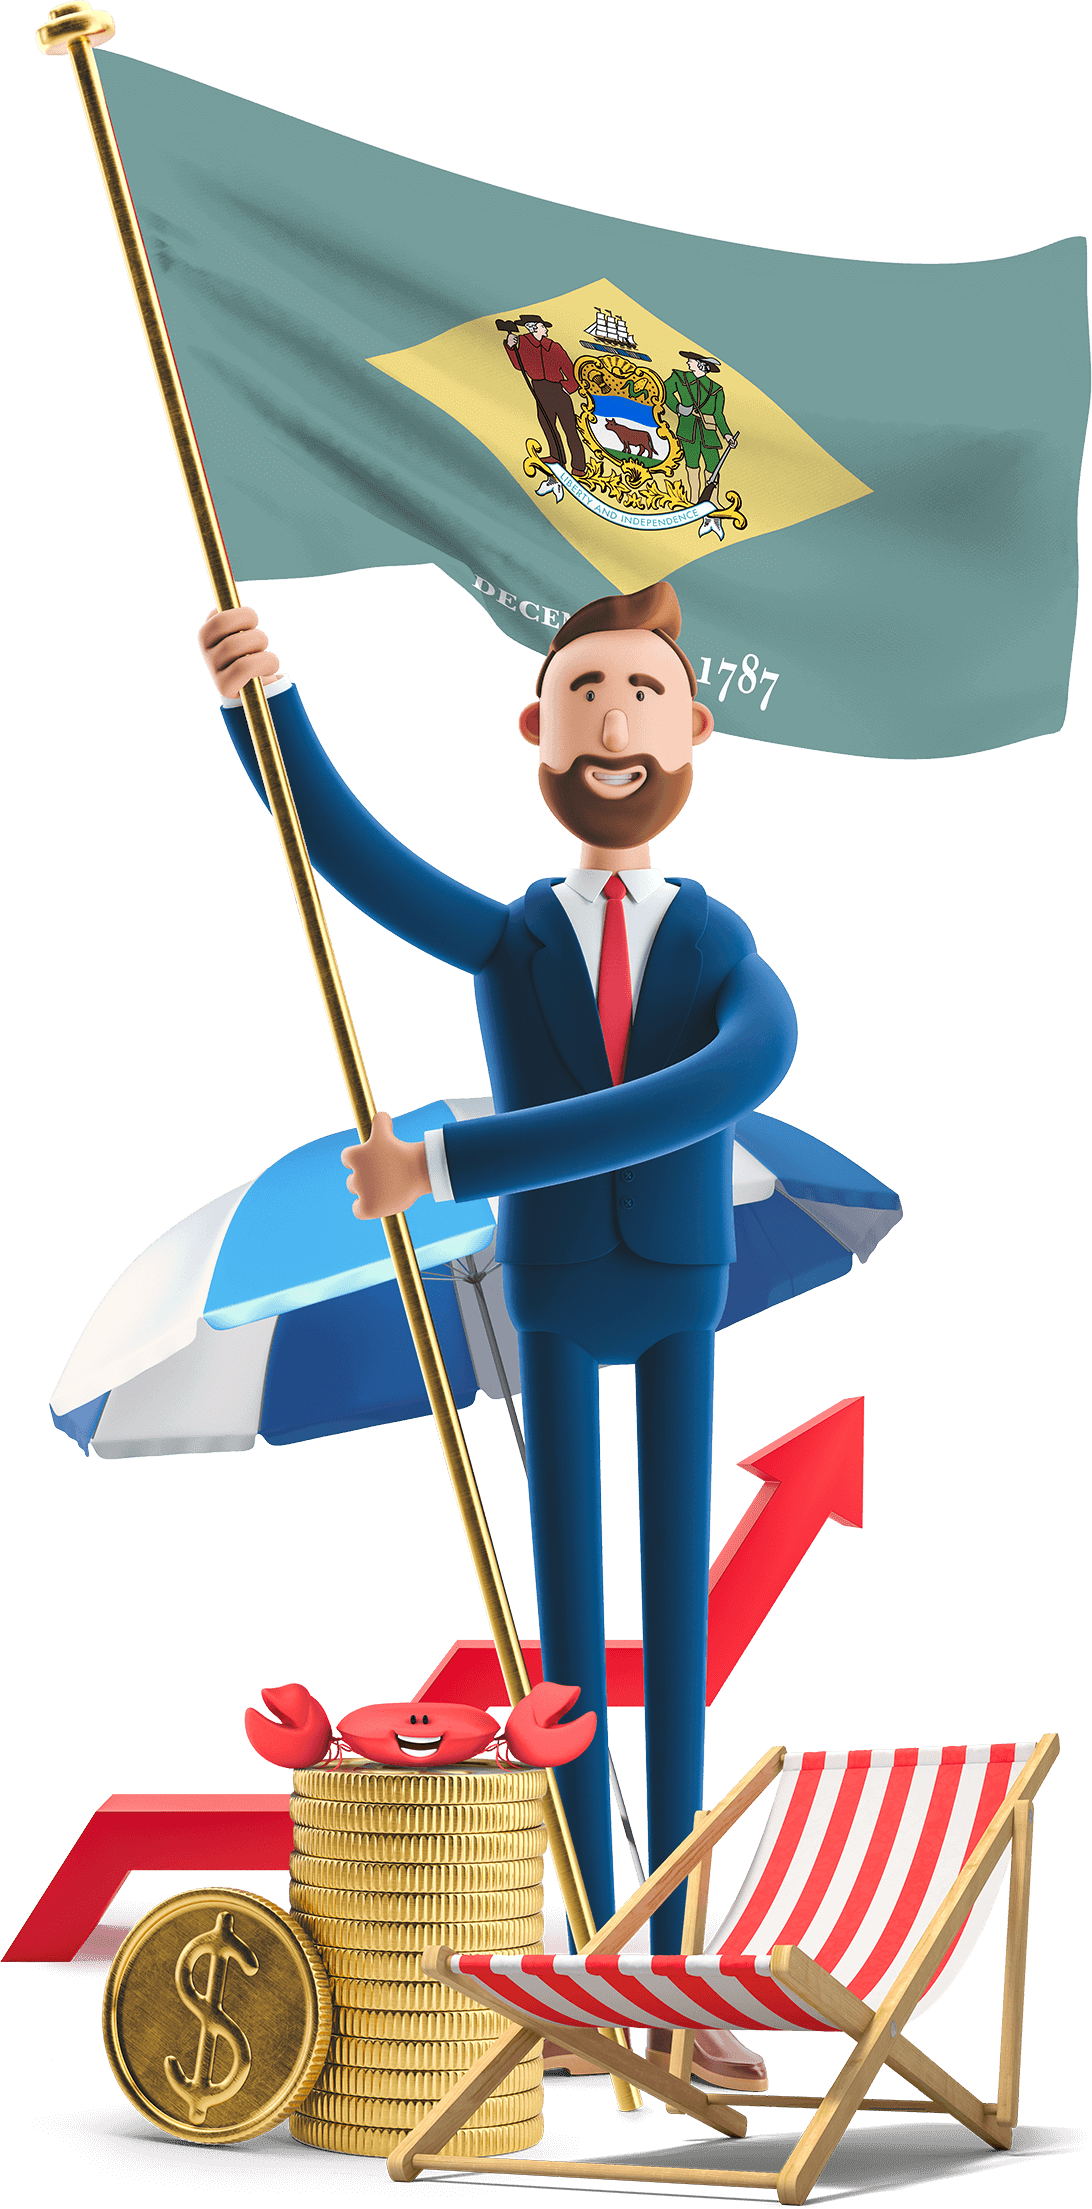 Delaware flag held by MetCredit USA businessman who's standing beside a beach chair and umbrella and there's a crab on a stack of oversized coins near his feet